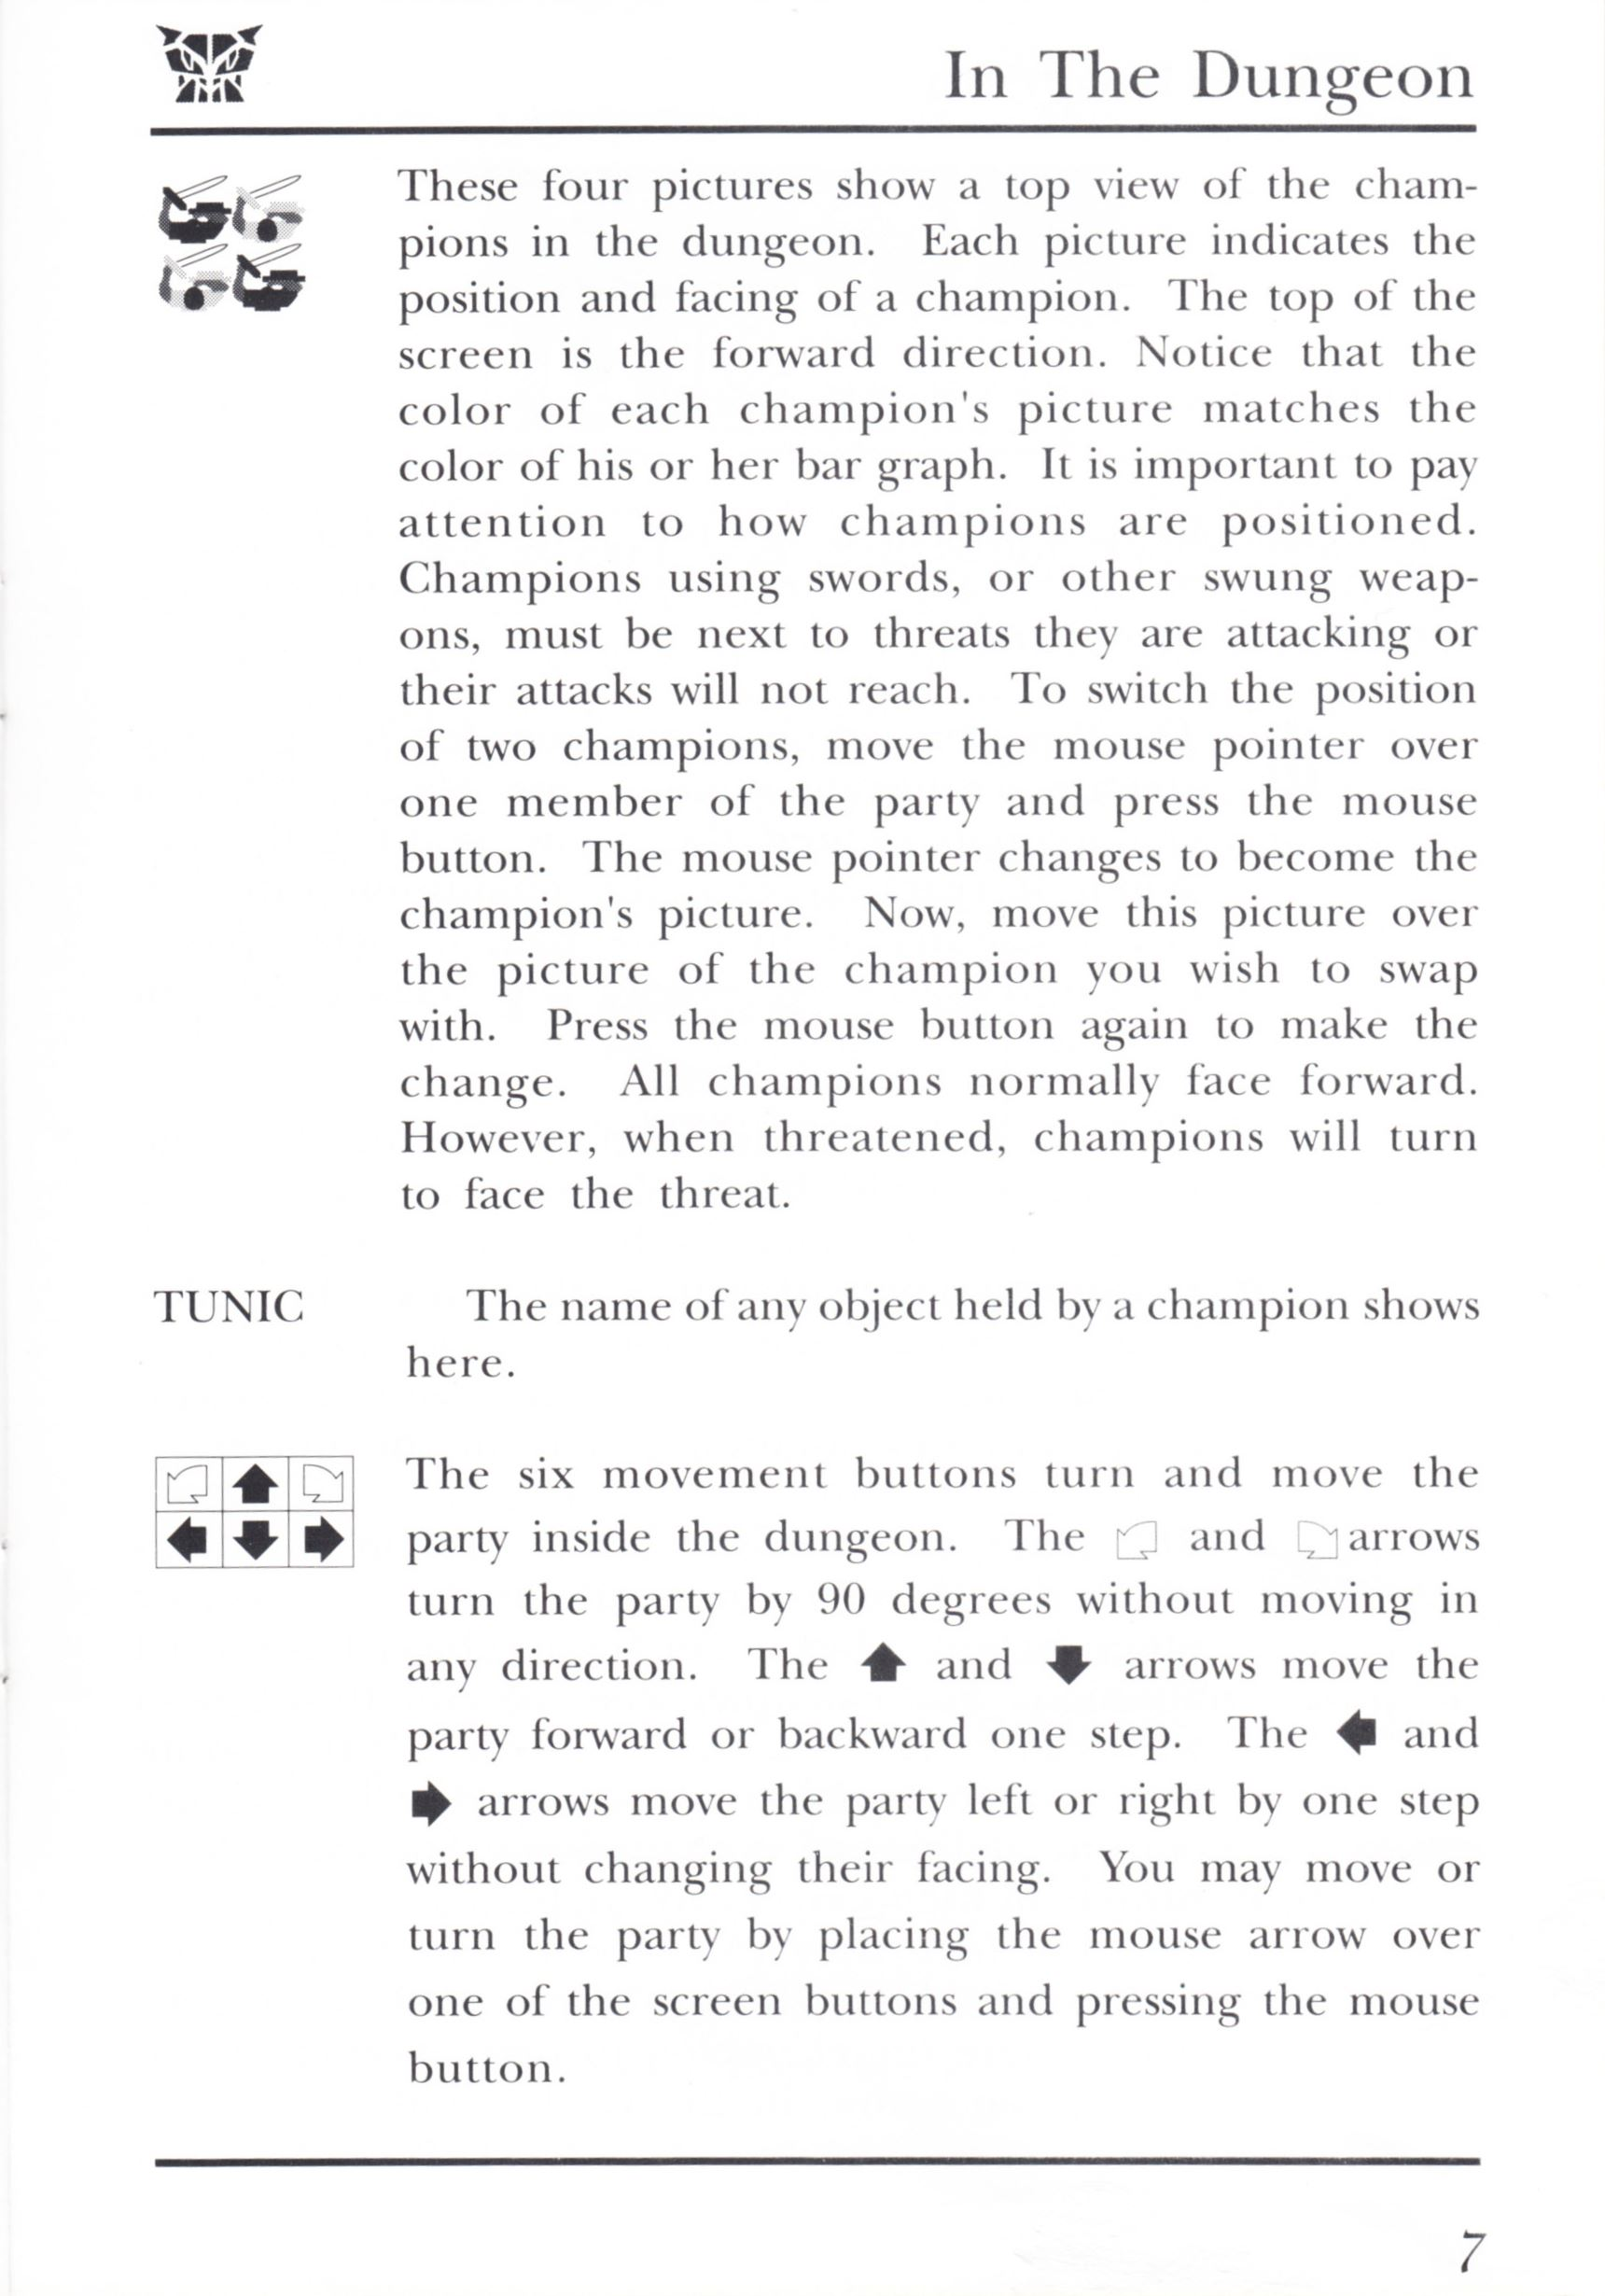 Game - Dungeon Master - UK - PC - Psygnosis - Manual - Page 027 - Scan